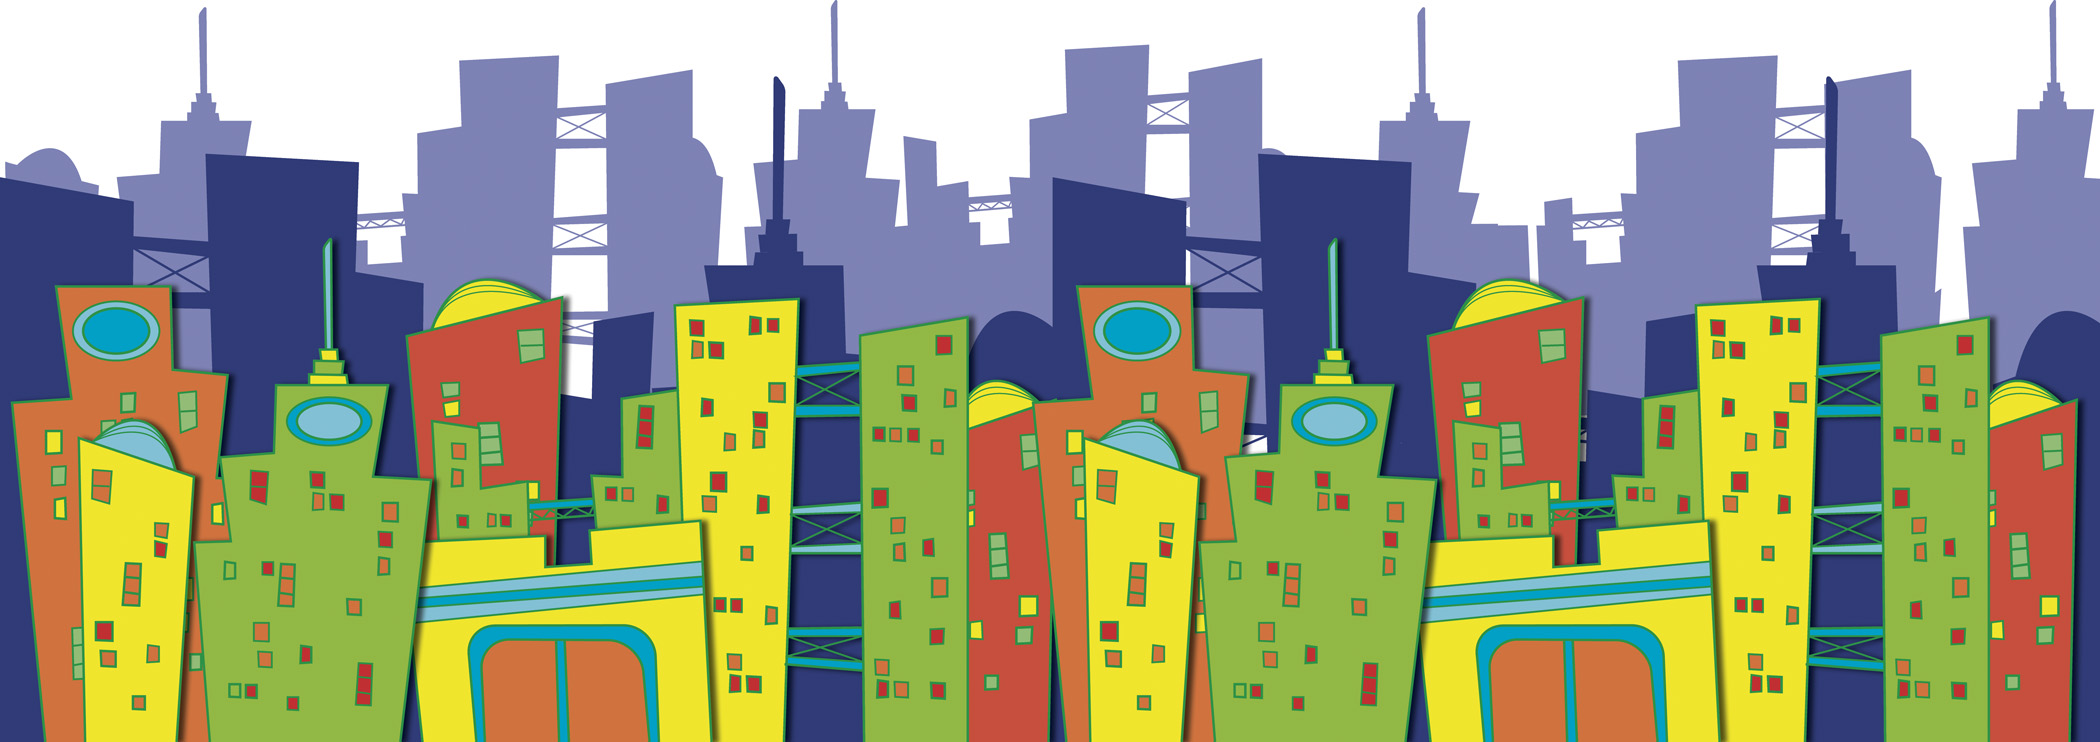 City clipart #14, Download drawings